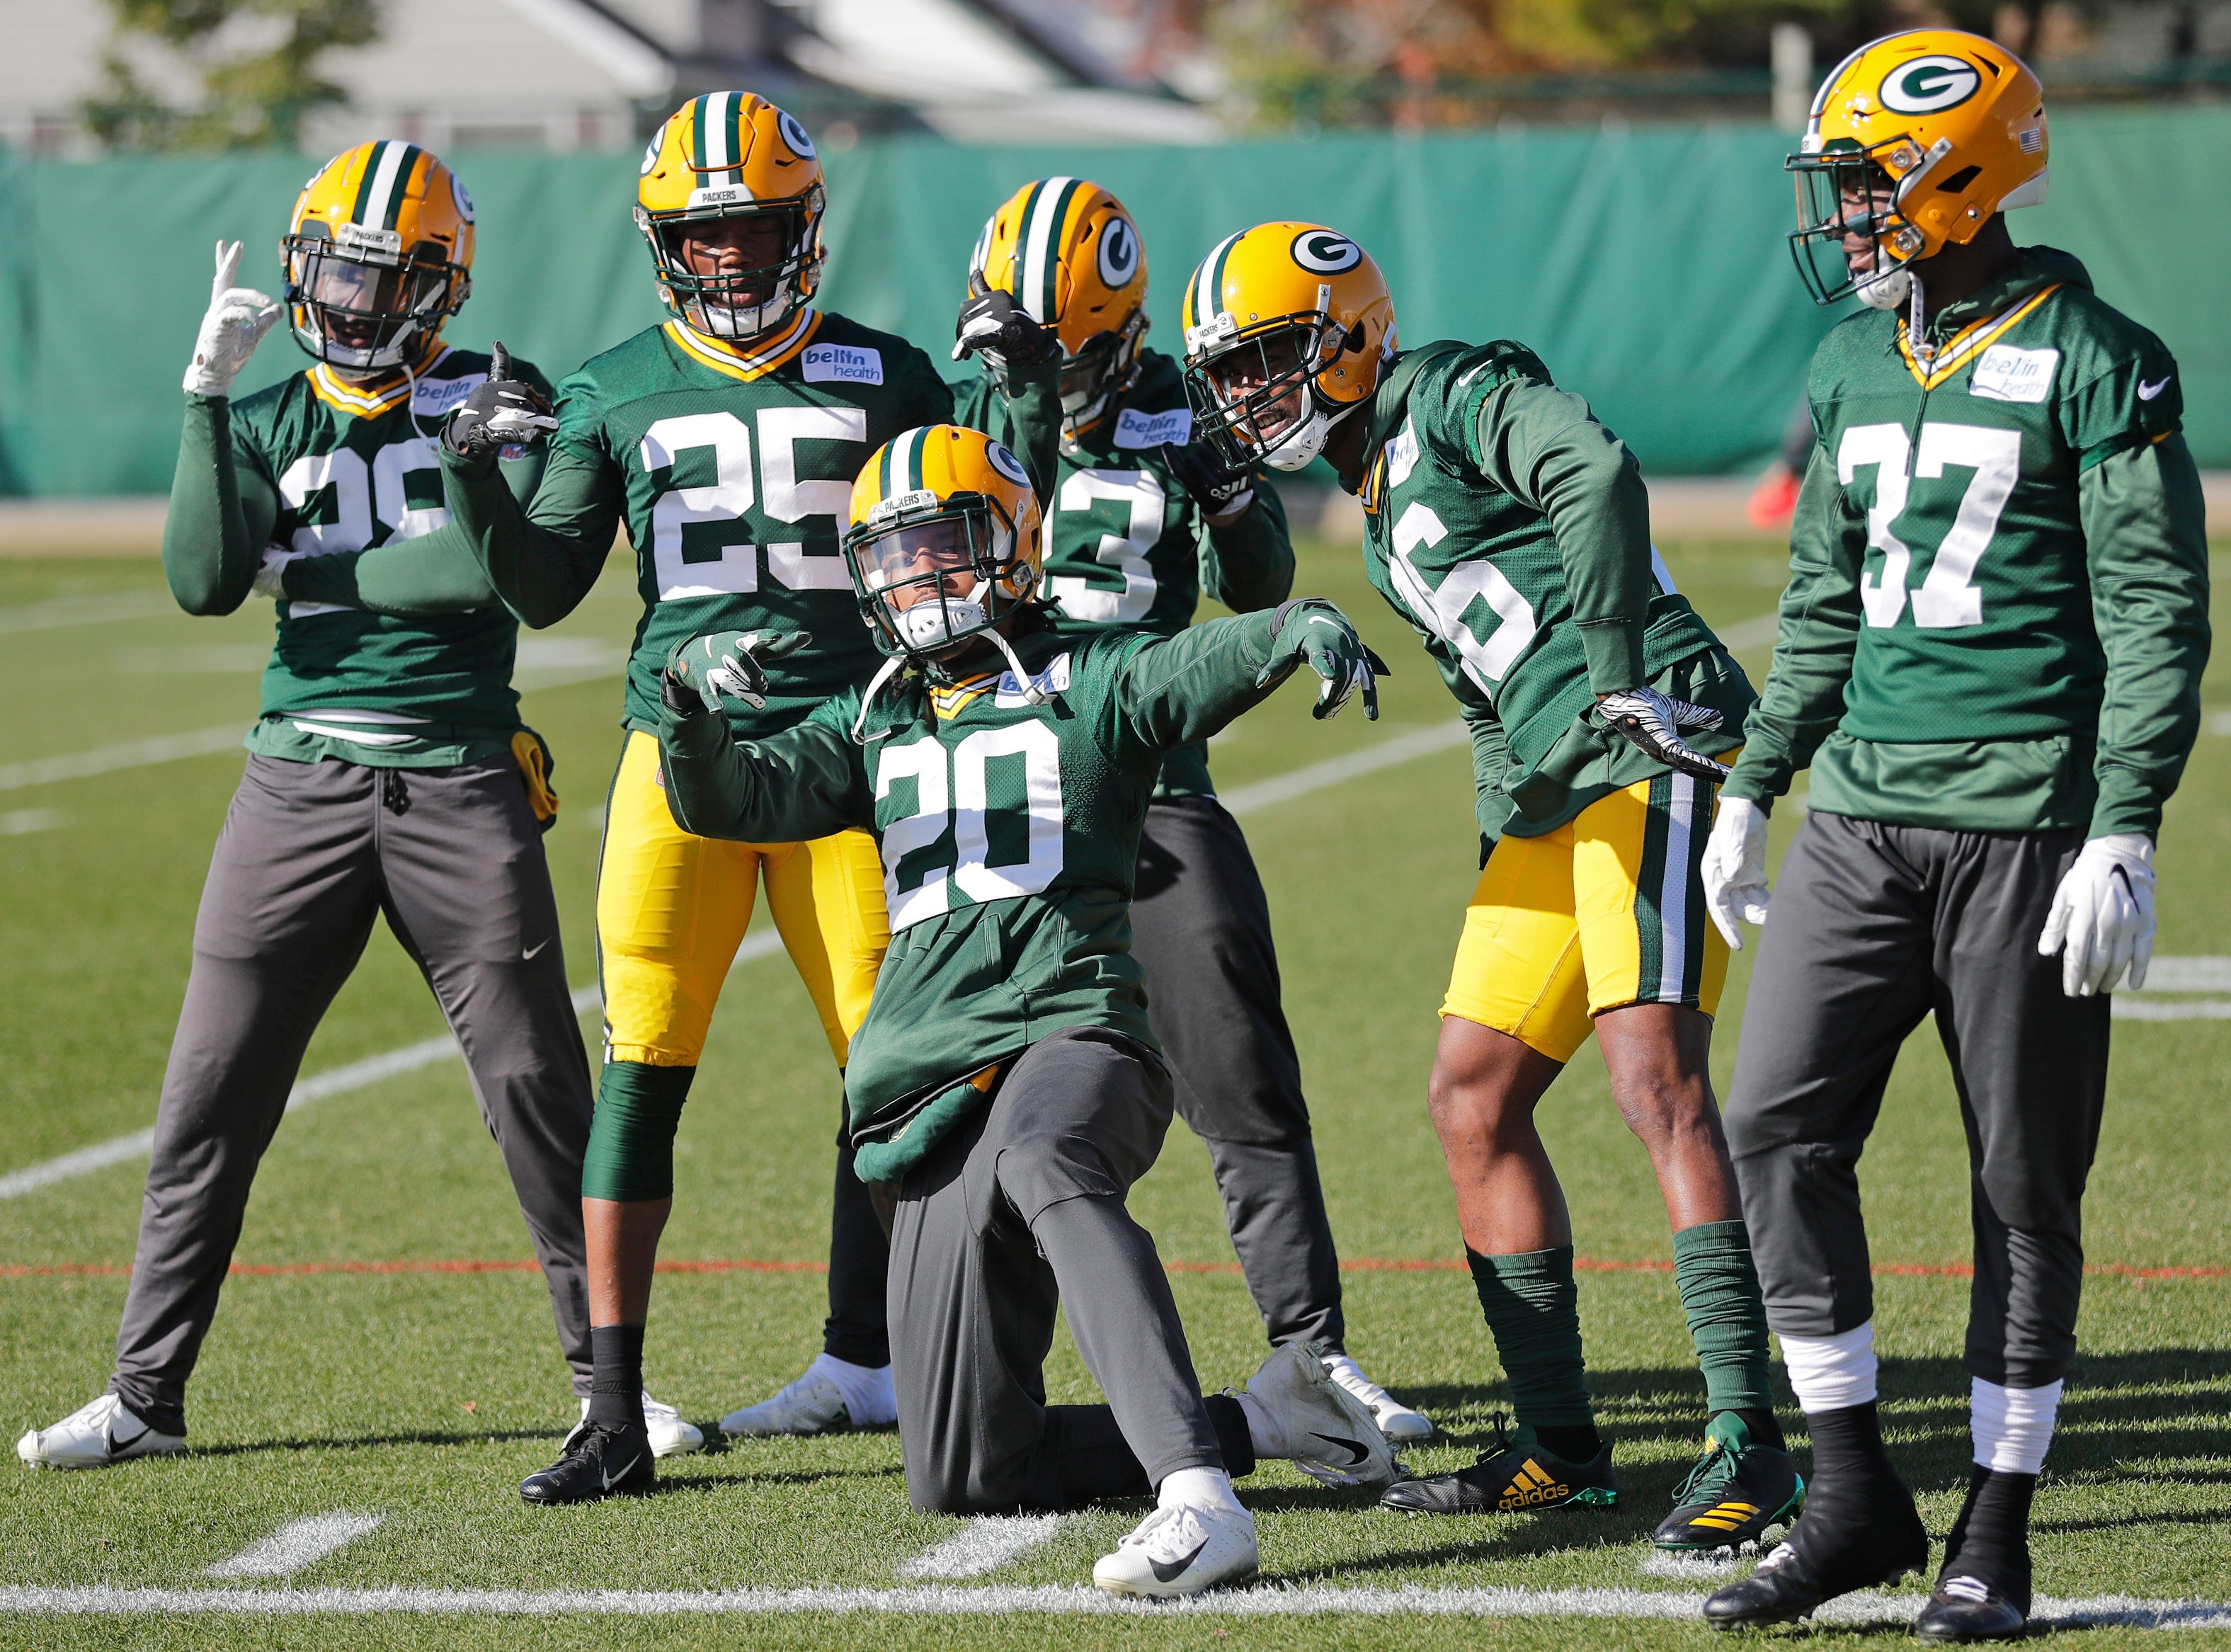 Defensive players pose for a photo at the start of practice at Ray Nitschke Field on Wednesday, October 31, 2018 in Ashwaubenon, Wis.